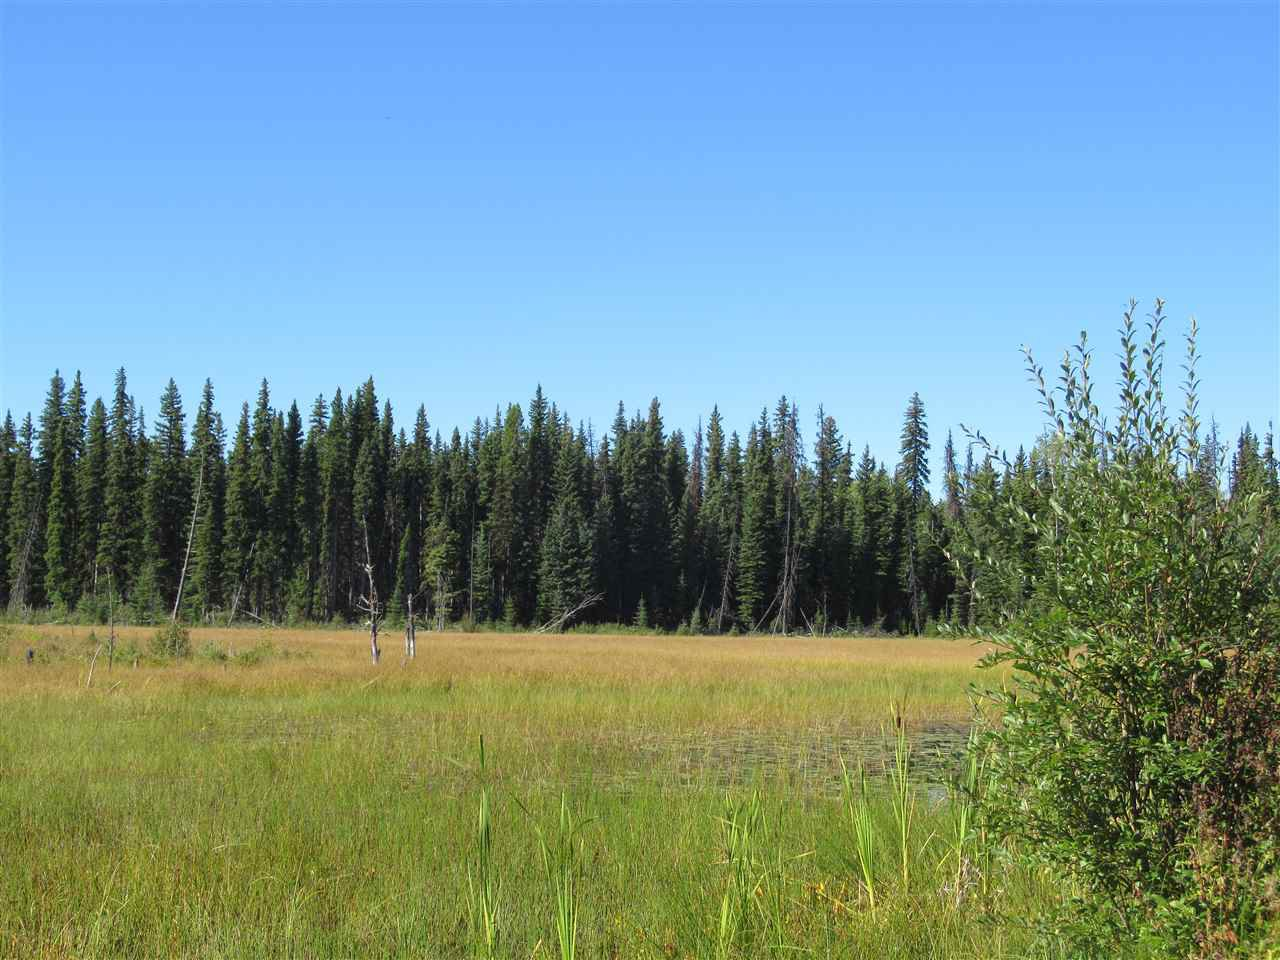 Main Photo: DL 6426 TONKA Road: 150 Mile House Land for sale (Williams Lake (Zone 27))  : MLS®# R2497364